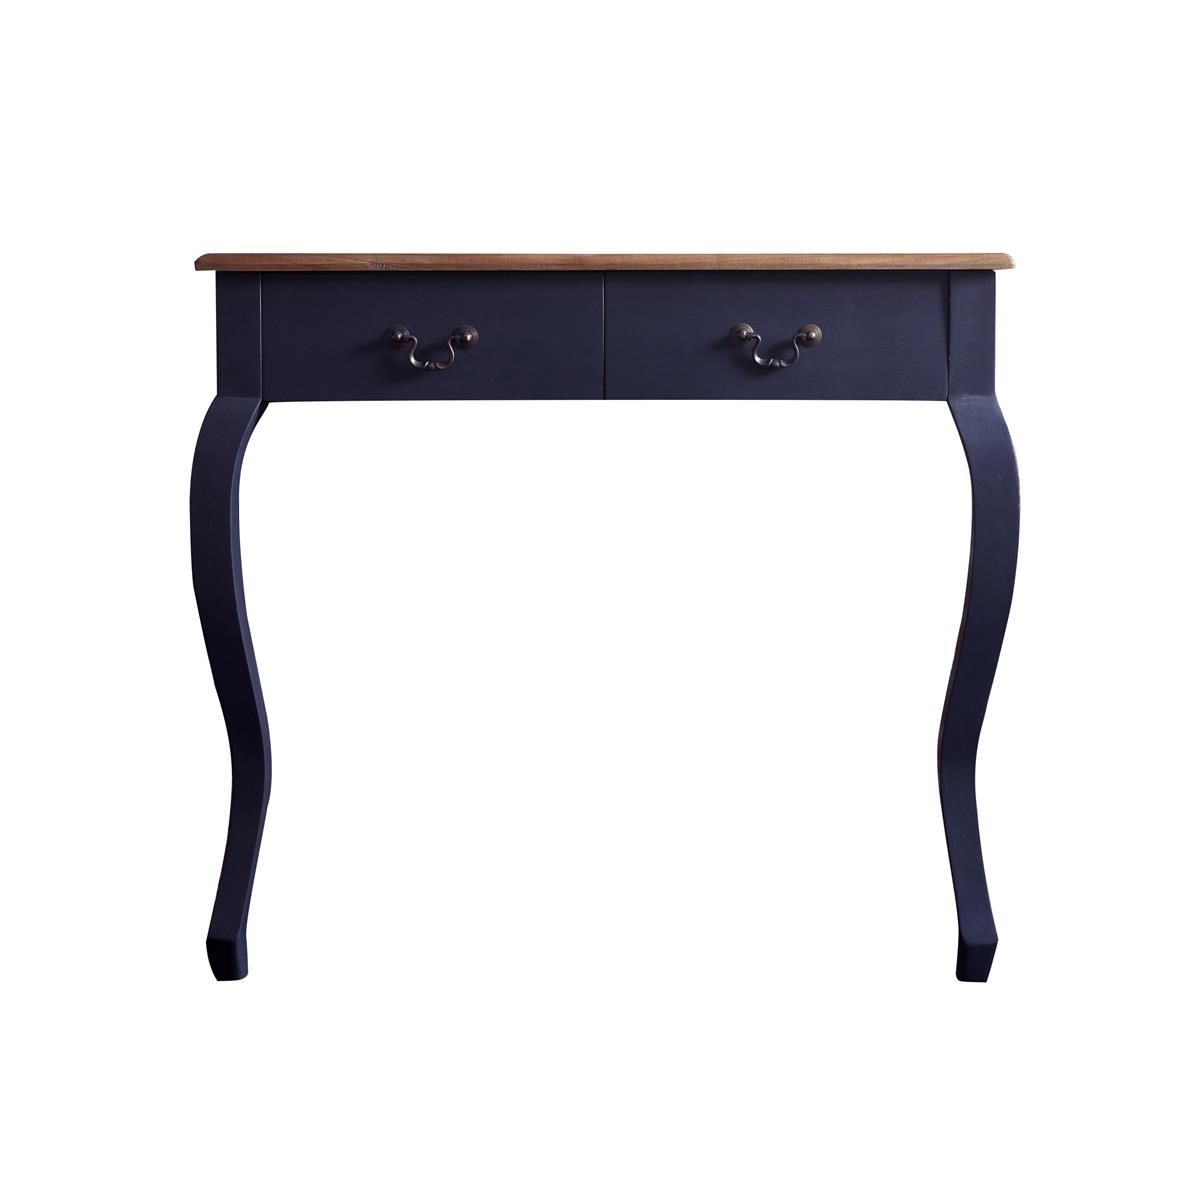 Wall Mounted Console Table Like This To Go Above Radiator In Foyer. Super  Slim